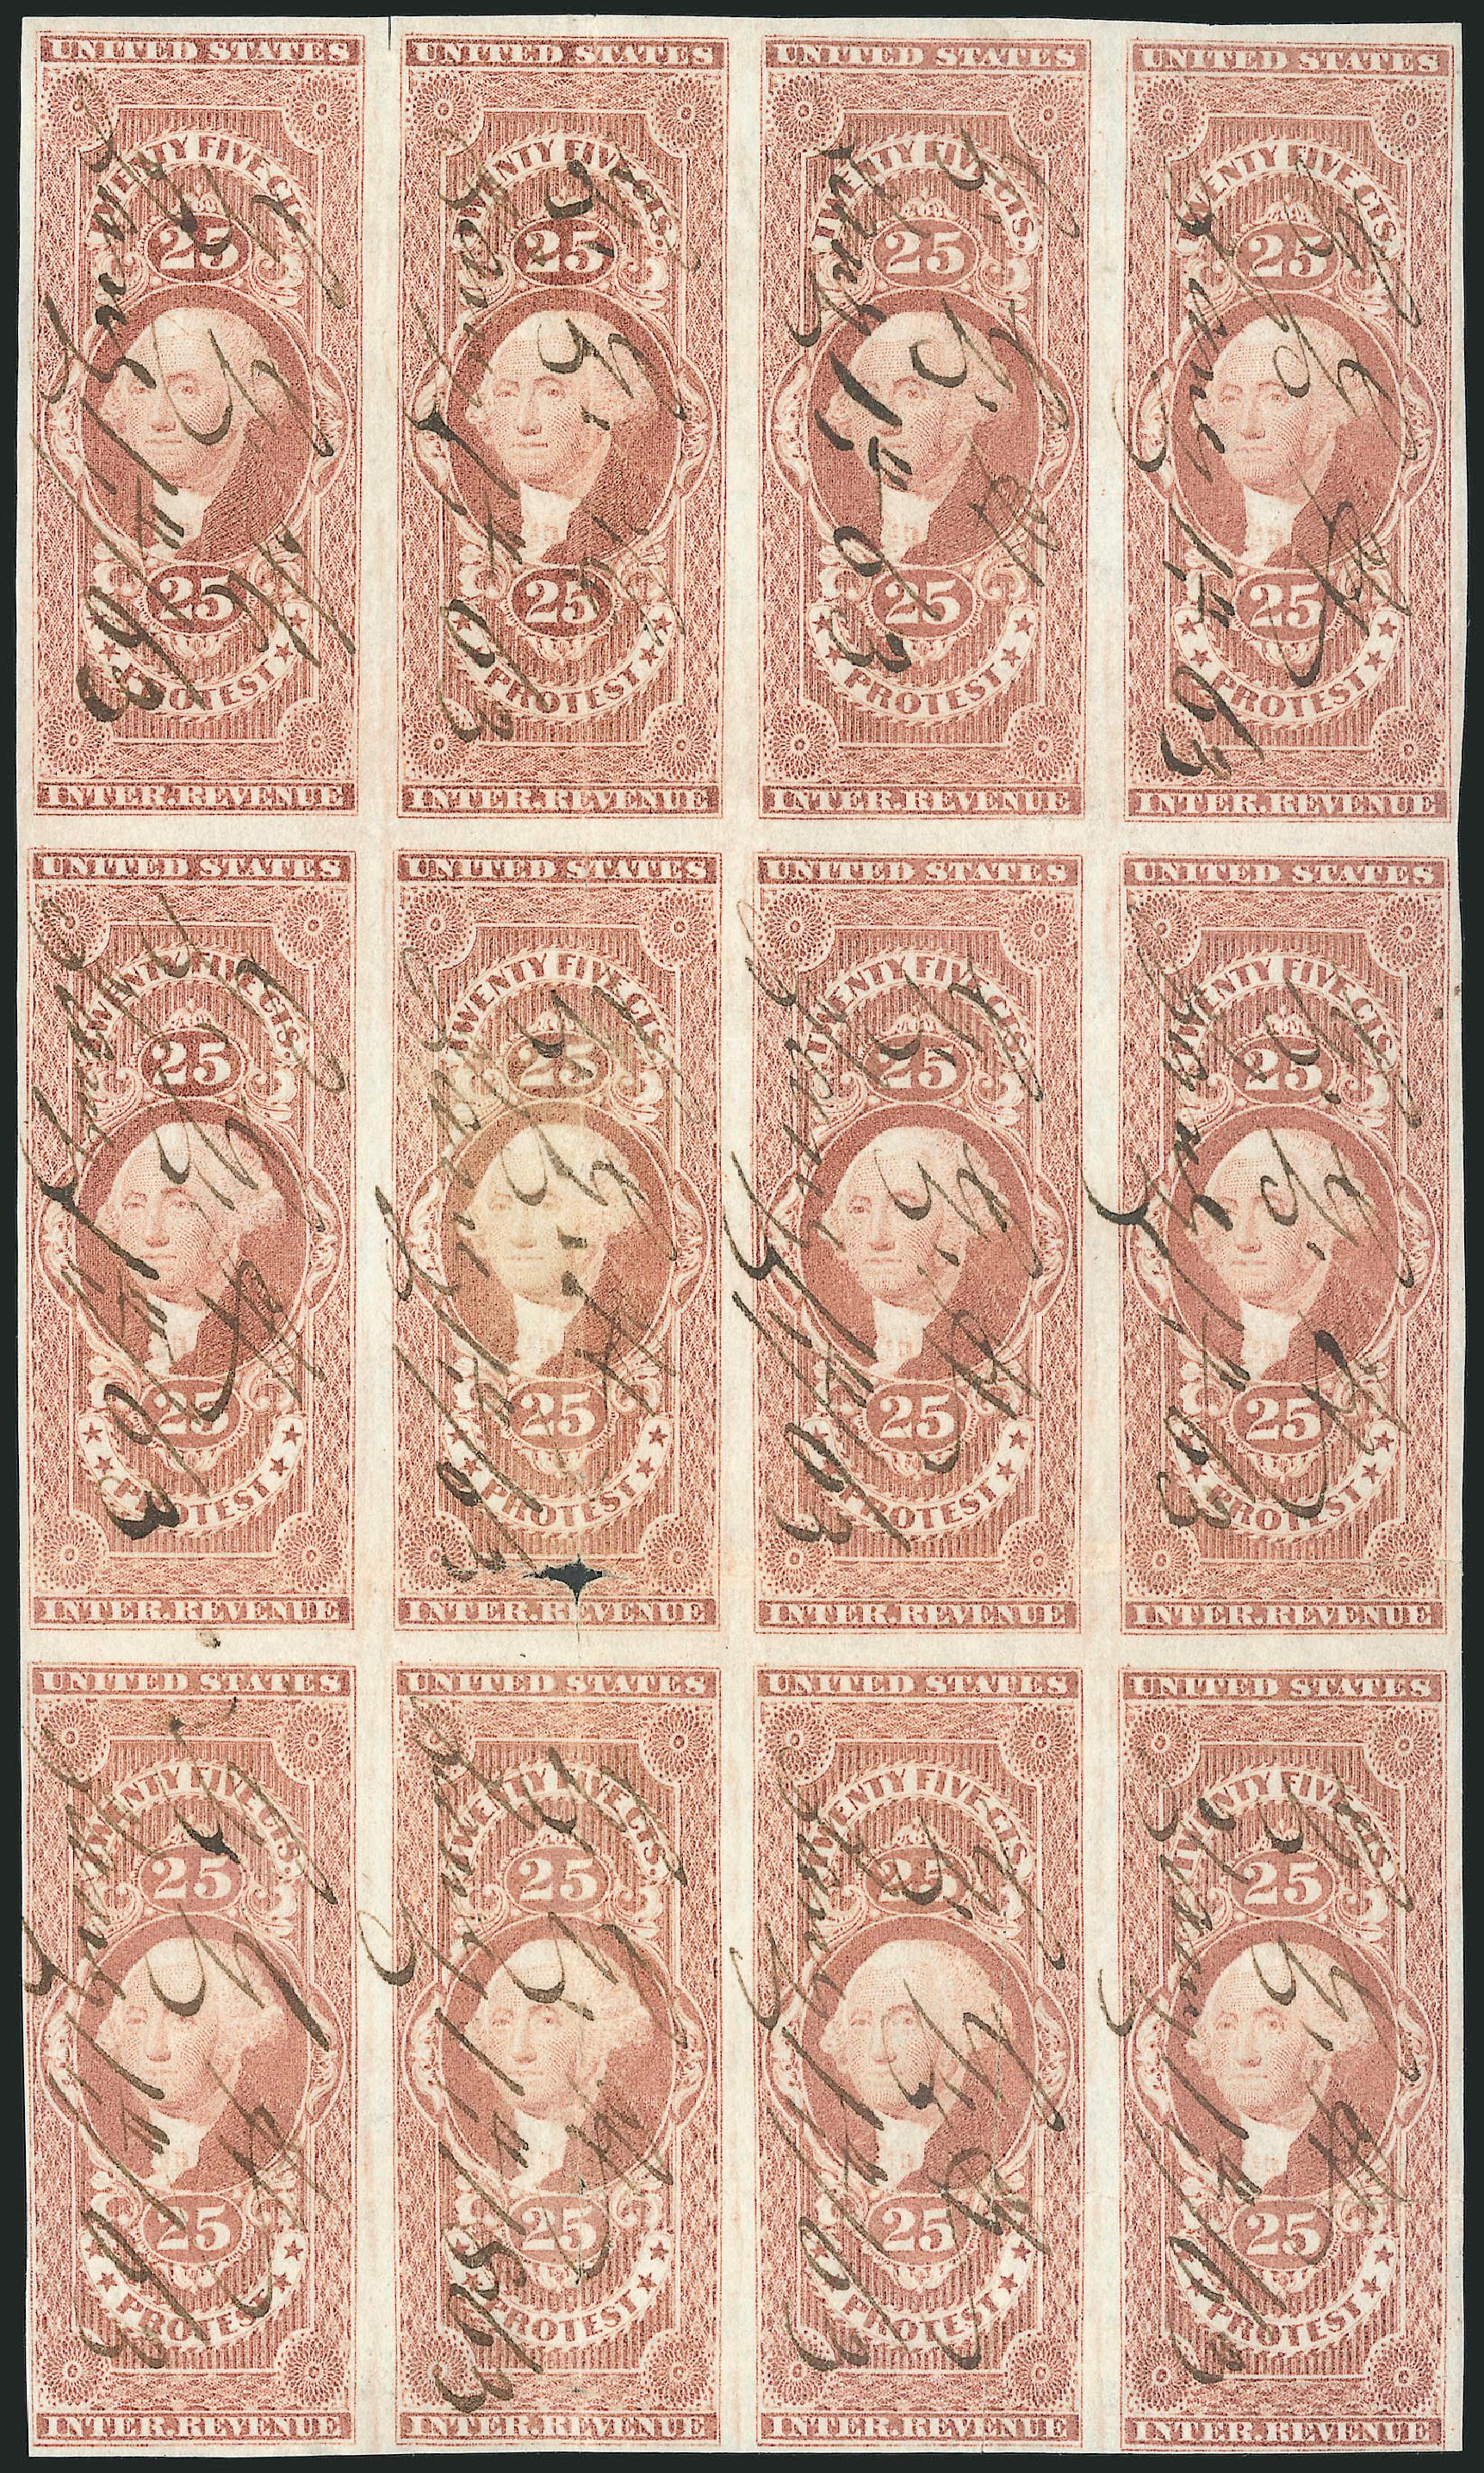 US Stamp Price Scott #R49 - 1862 25c Revenue Protest. Robert Siegel Auction Galleries, Dec 2014, Sale 1089, Lot 339